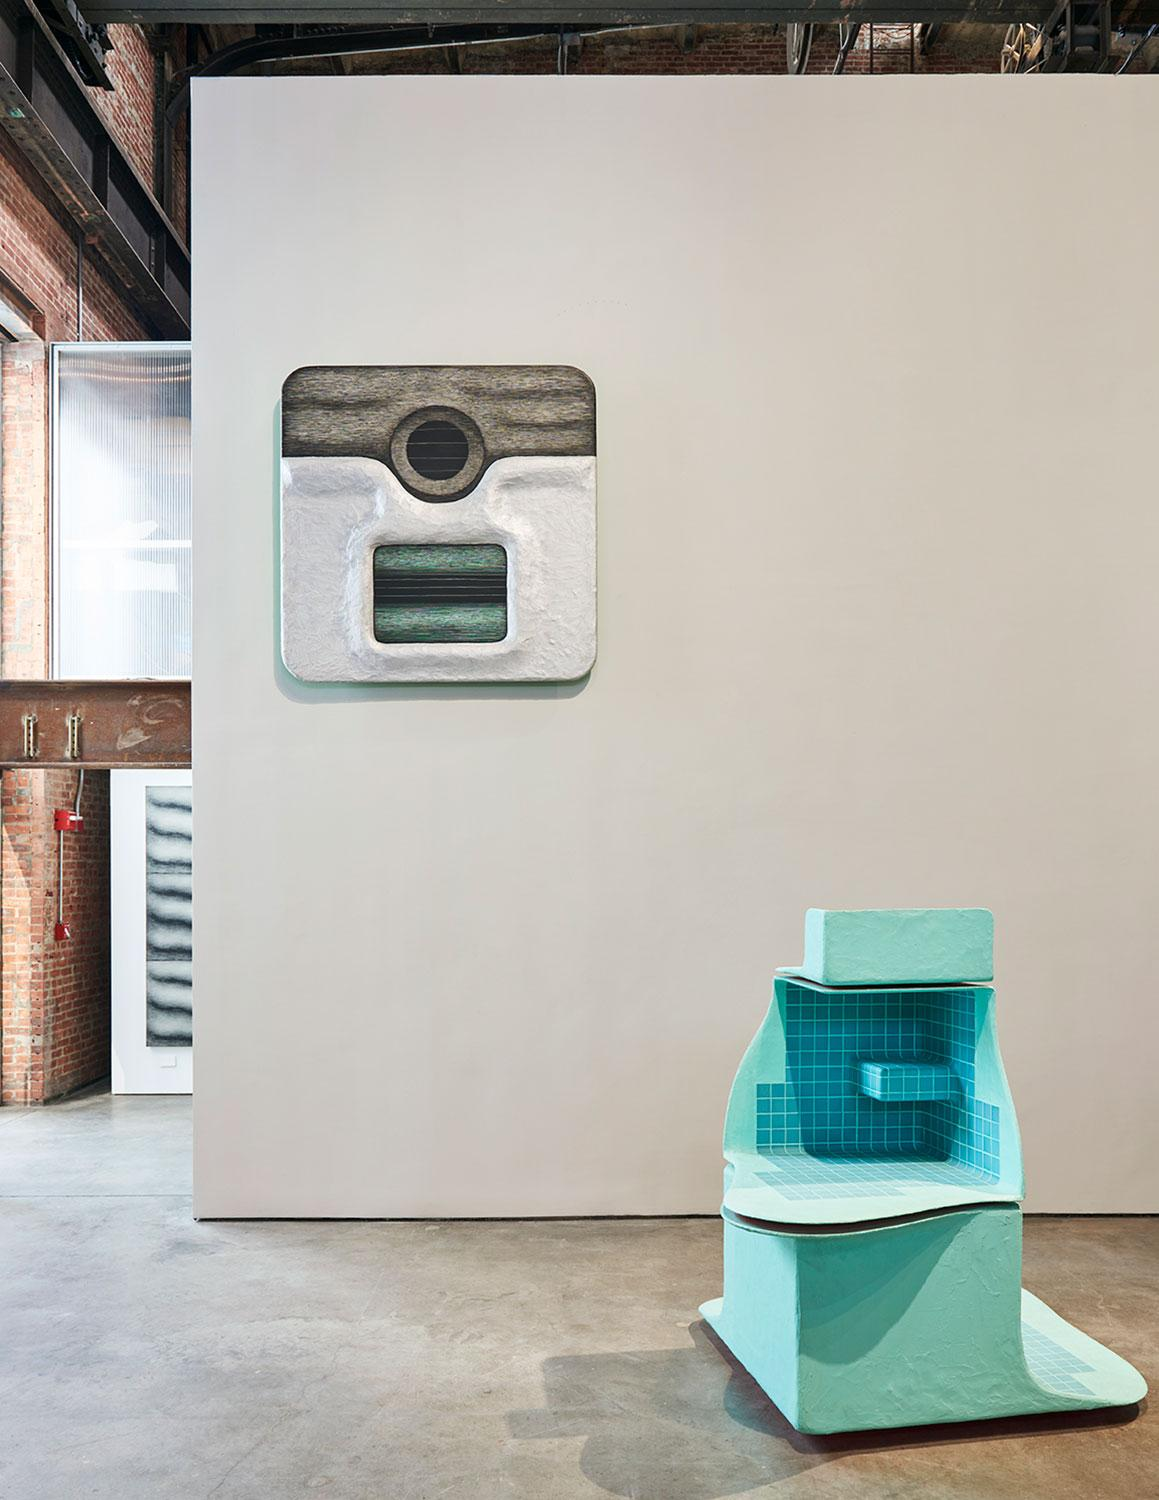 Tishan Hsu: Liquid Circuit, installation view, SculptureCenter, New York, 2020. Photo: Kyle Knodell